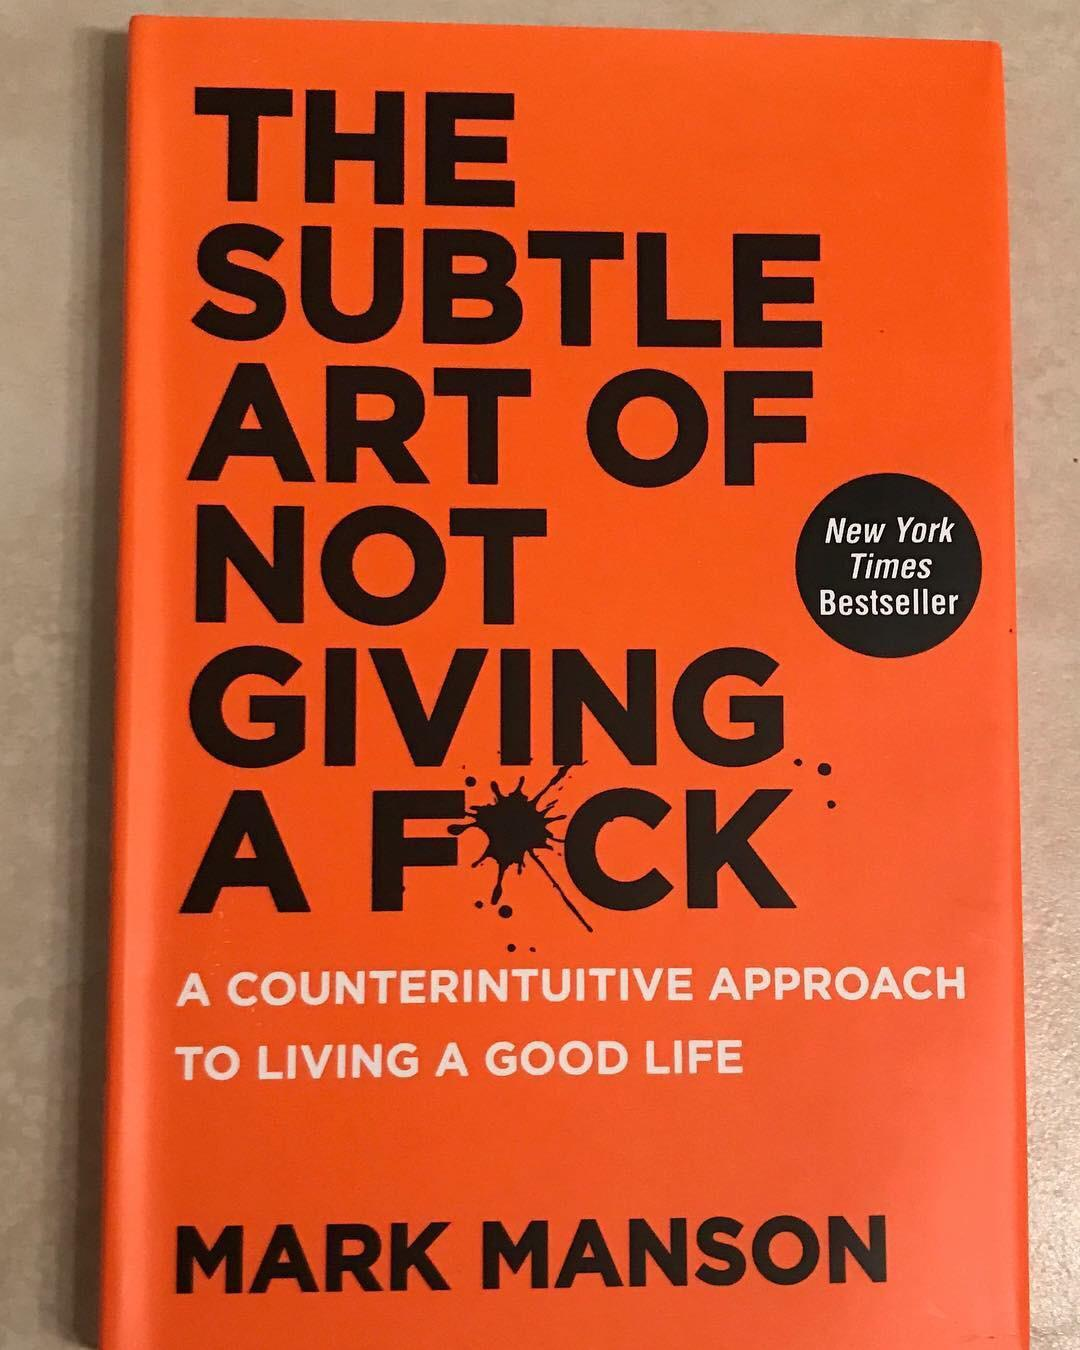 motivational quotes for women - the subtle art of not giving a fuck book cover